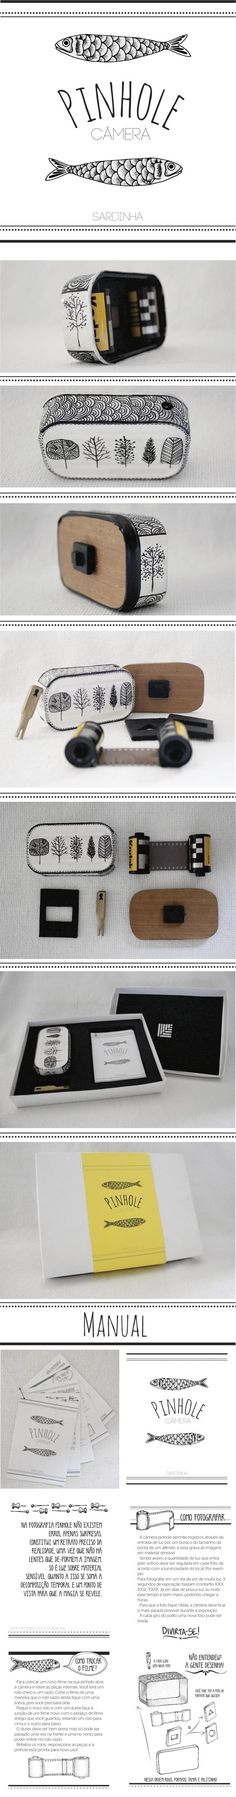 This is a product you can buy which is cool because it is a pinhole camera that is already made. I think it is very cool and would buy it.